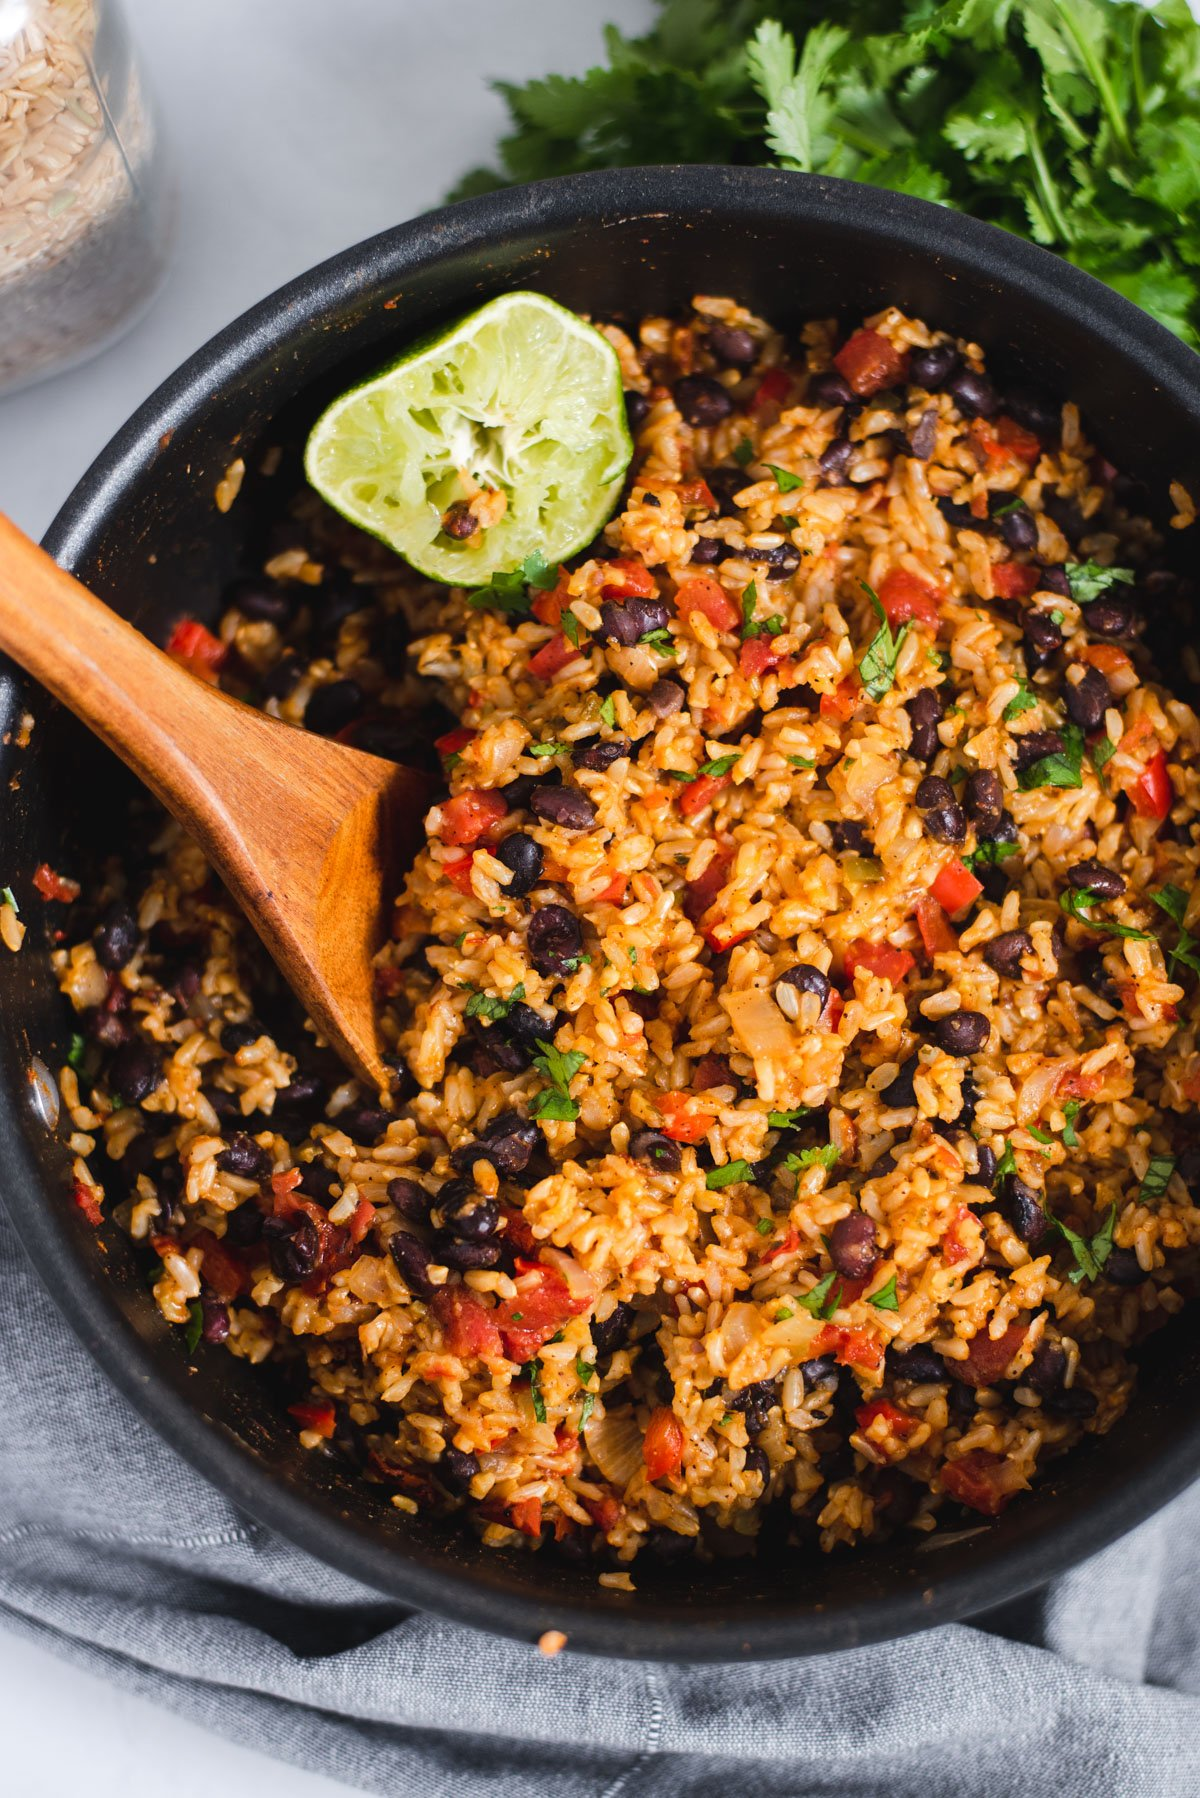 Large black pot filled with rice and beans and a wooden spoon